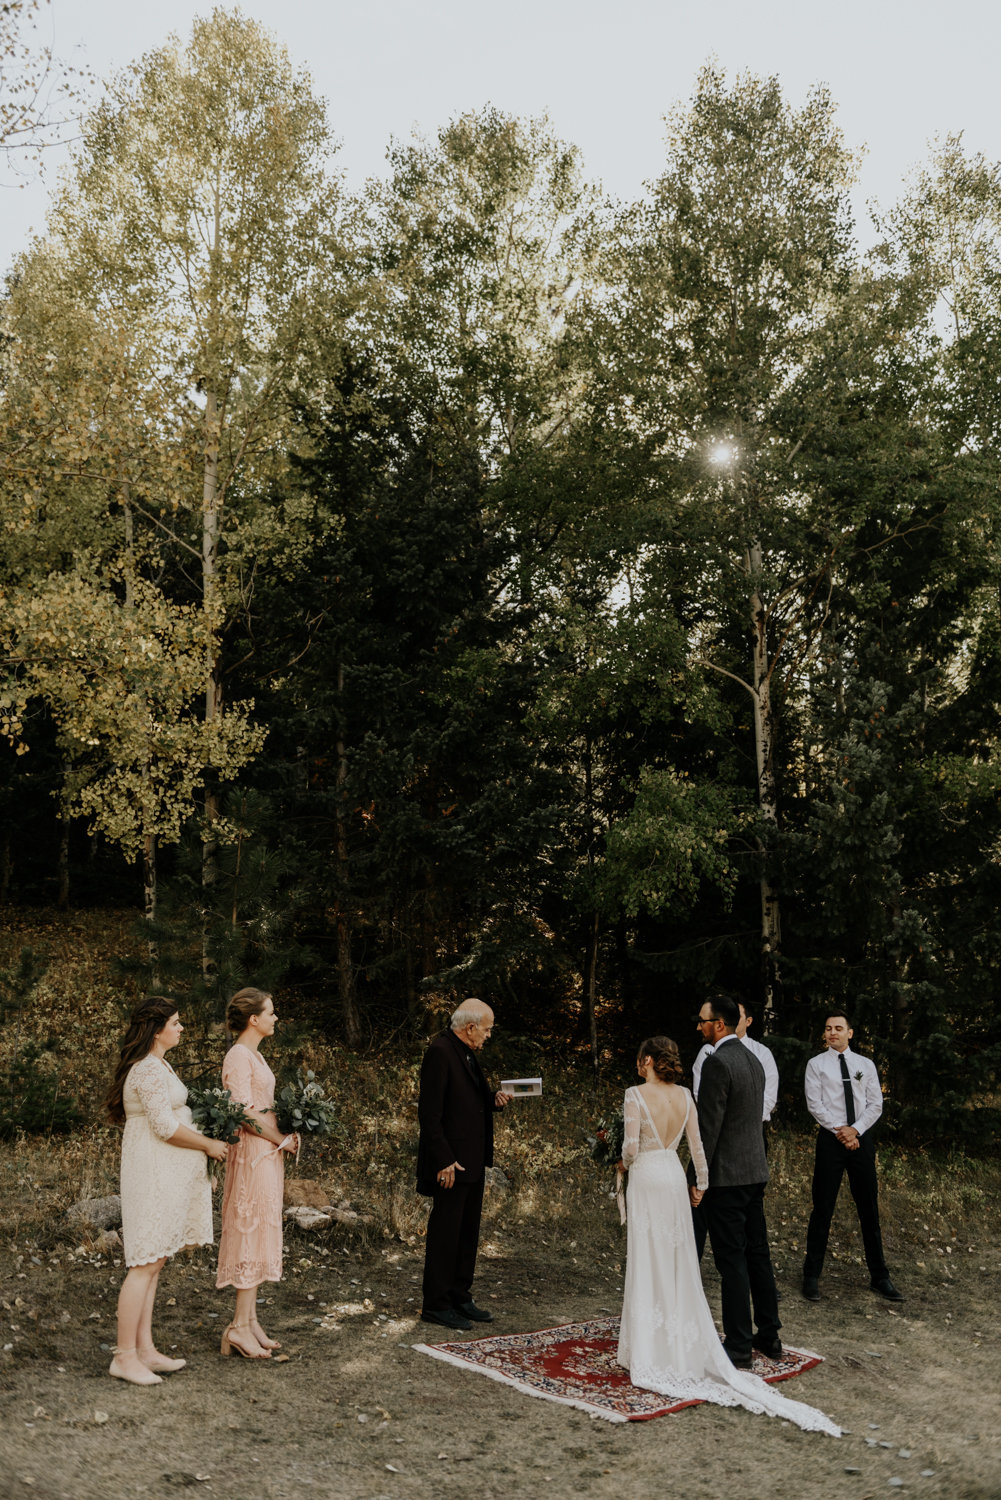 Intimate Mountain Wedding Ceremony Moments Photos in Meadow Creek, Pine Colorado